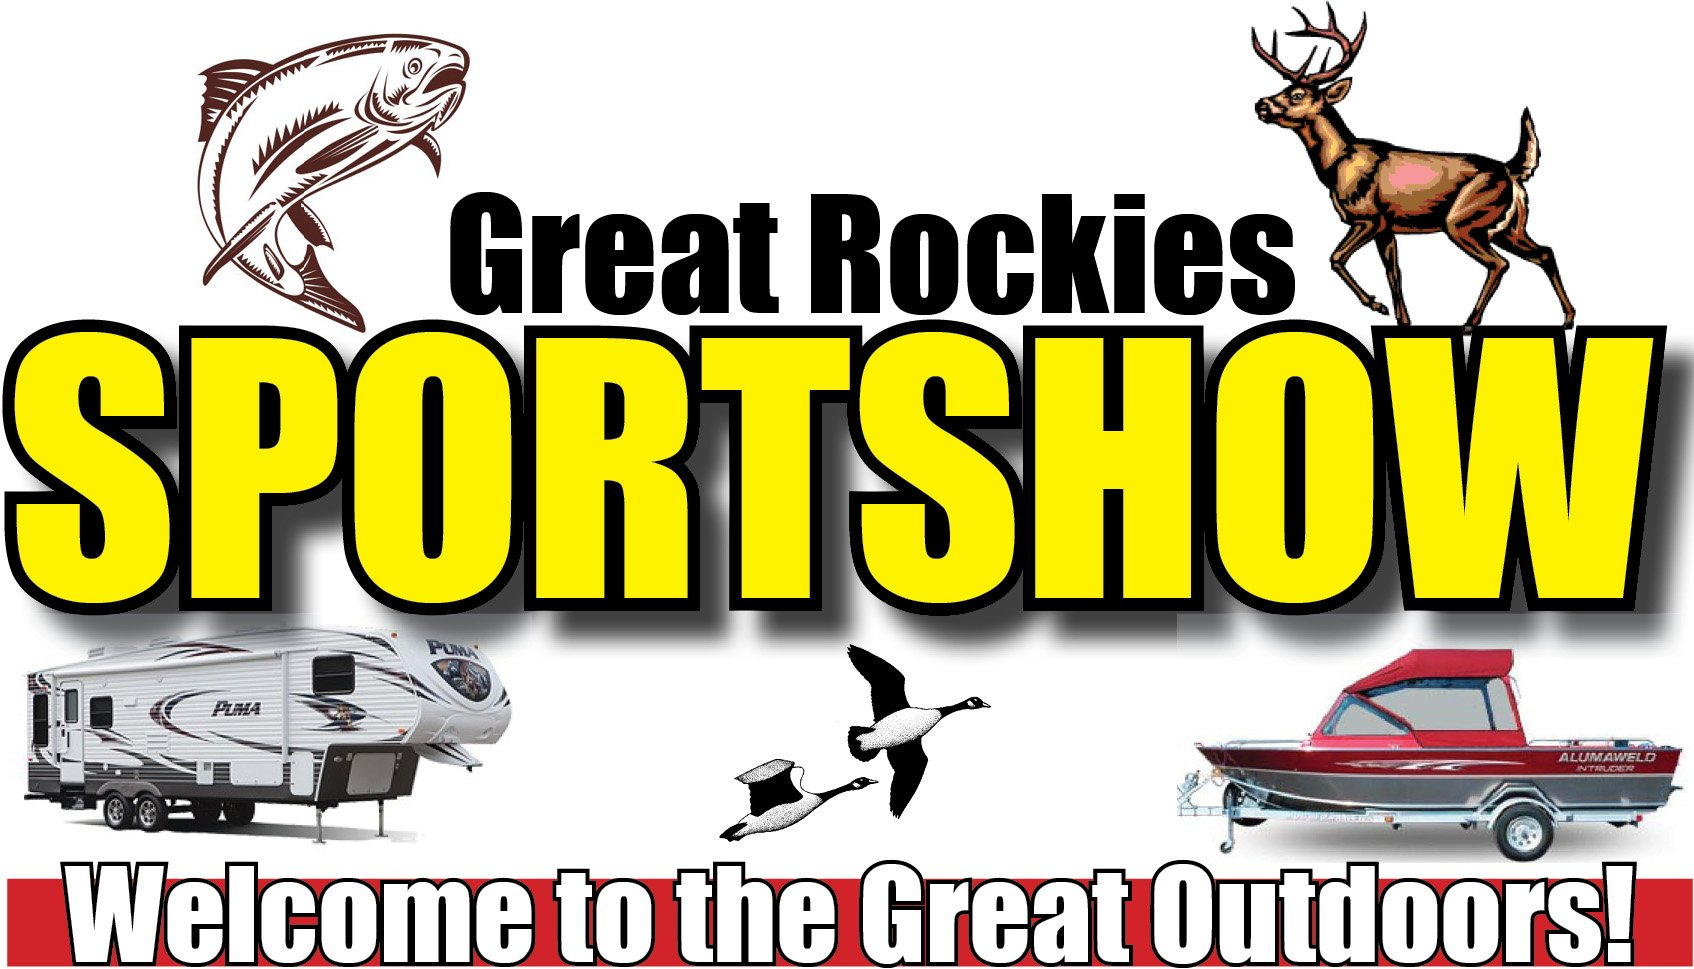 Montana's Great Rockies Sportshow | Helena